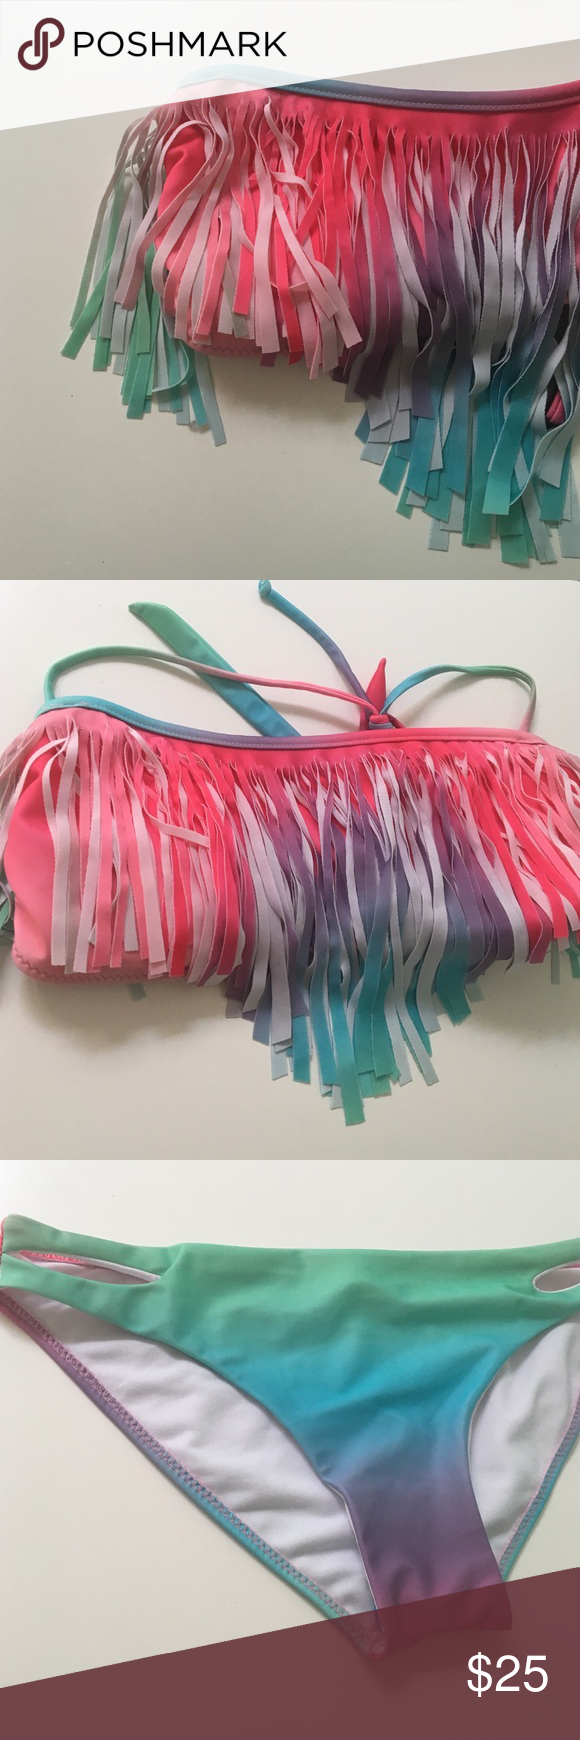 | new | • Rainbow Fringe Bikini • •Info This bikini was purchased and never worn! In new condition, selling because it has gone untouched!  🔹No Trades/alternate transactions 🔹24 hour holds ONLY 🔹Make fair offers through offer button 🔹Same or next day shipping 🔹Free gift with every purchase $20+ 🔹Scratch off coupon given with all orders 📷 Closet Instagram: @alexandra.como 📷 Personal Instagram: @alexcomo Swim Bikinis